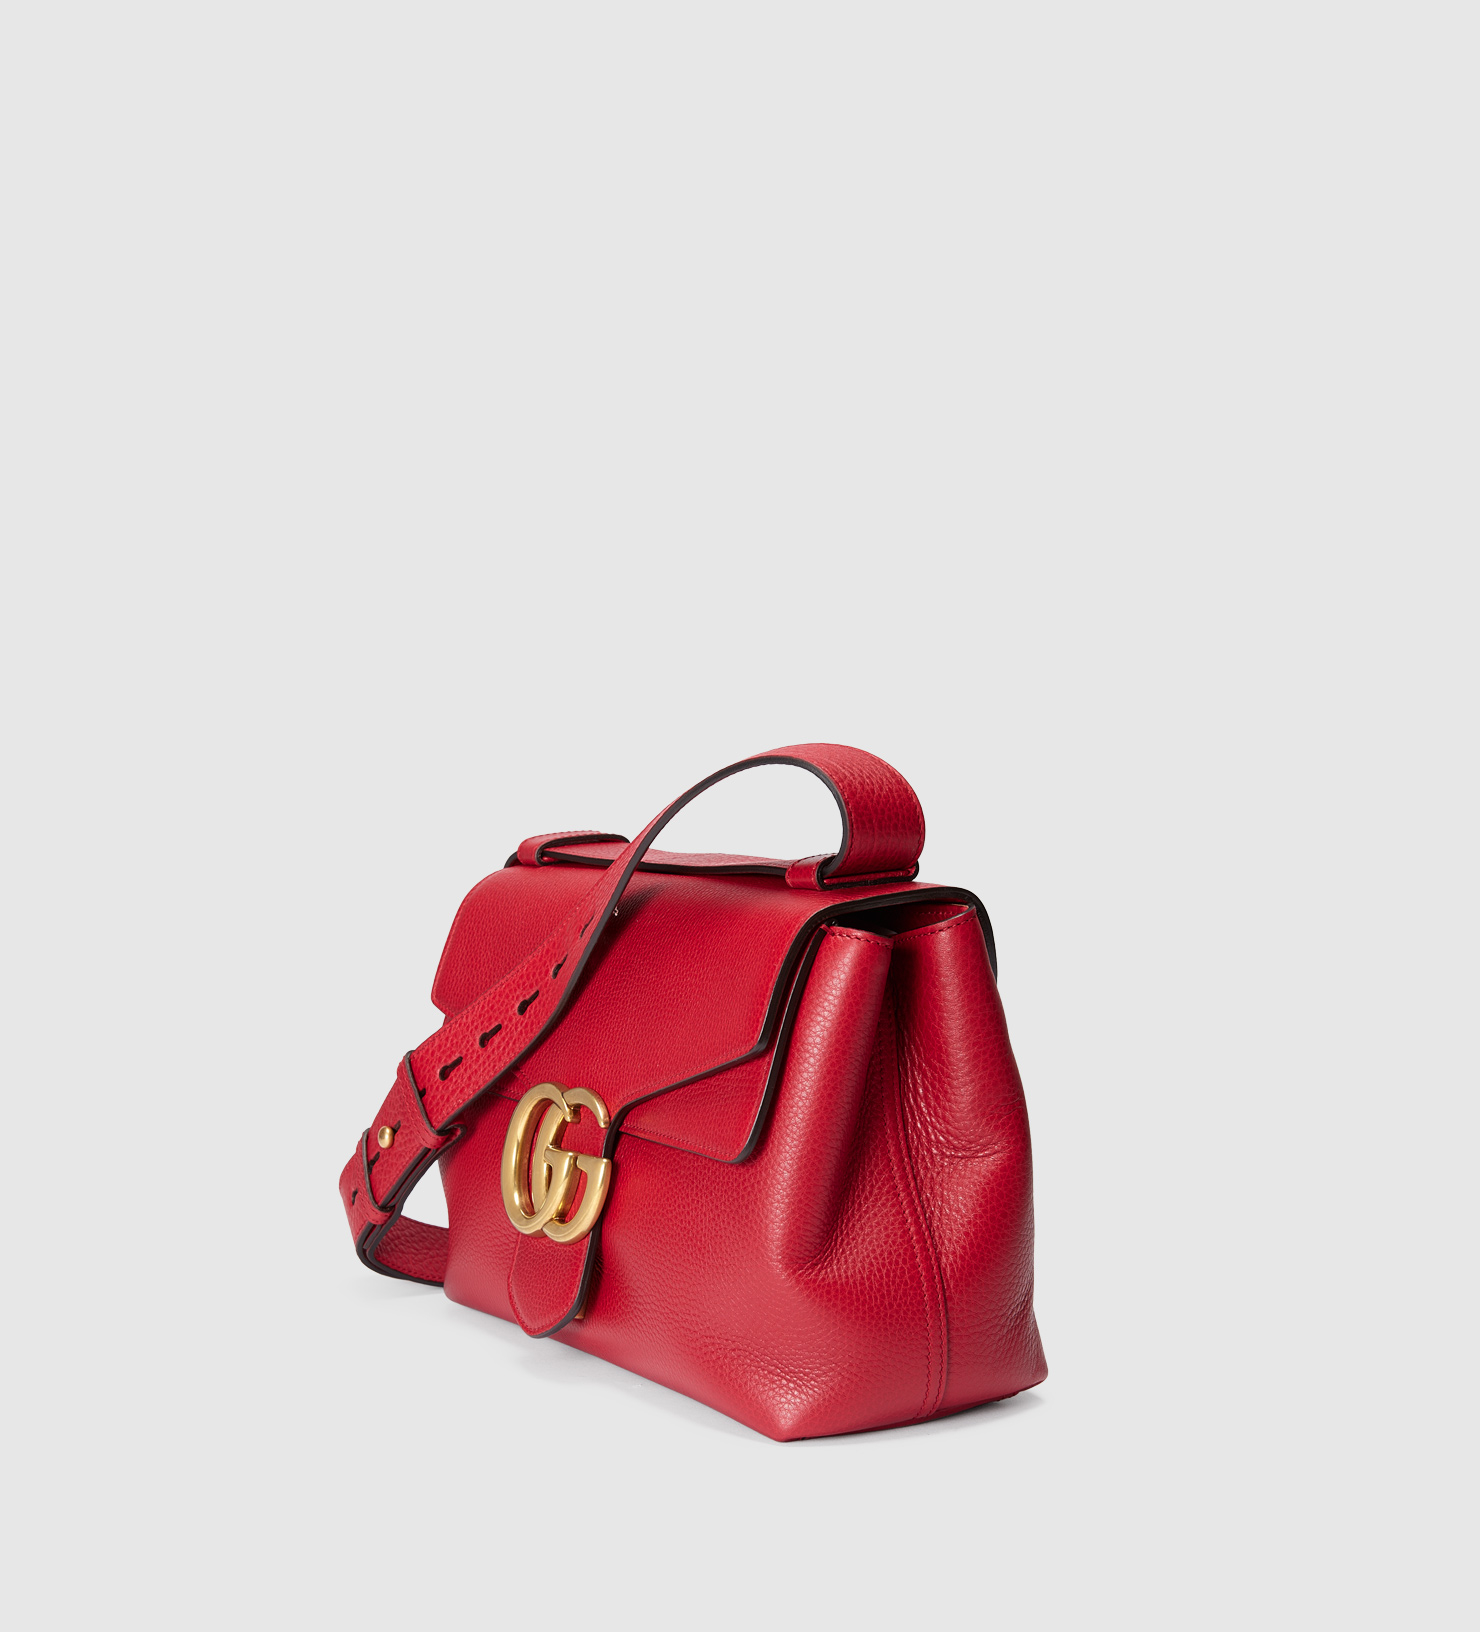 be5e3a2fab0b2 Gucci Marmont Bag Red